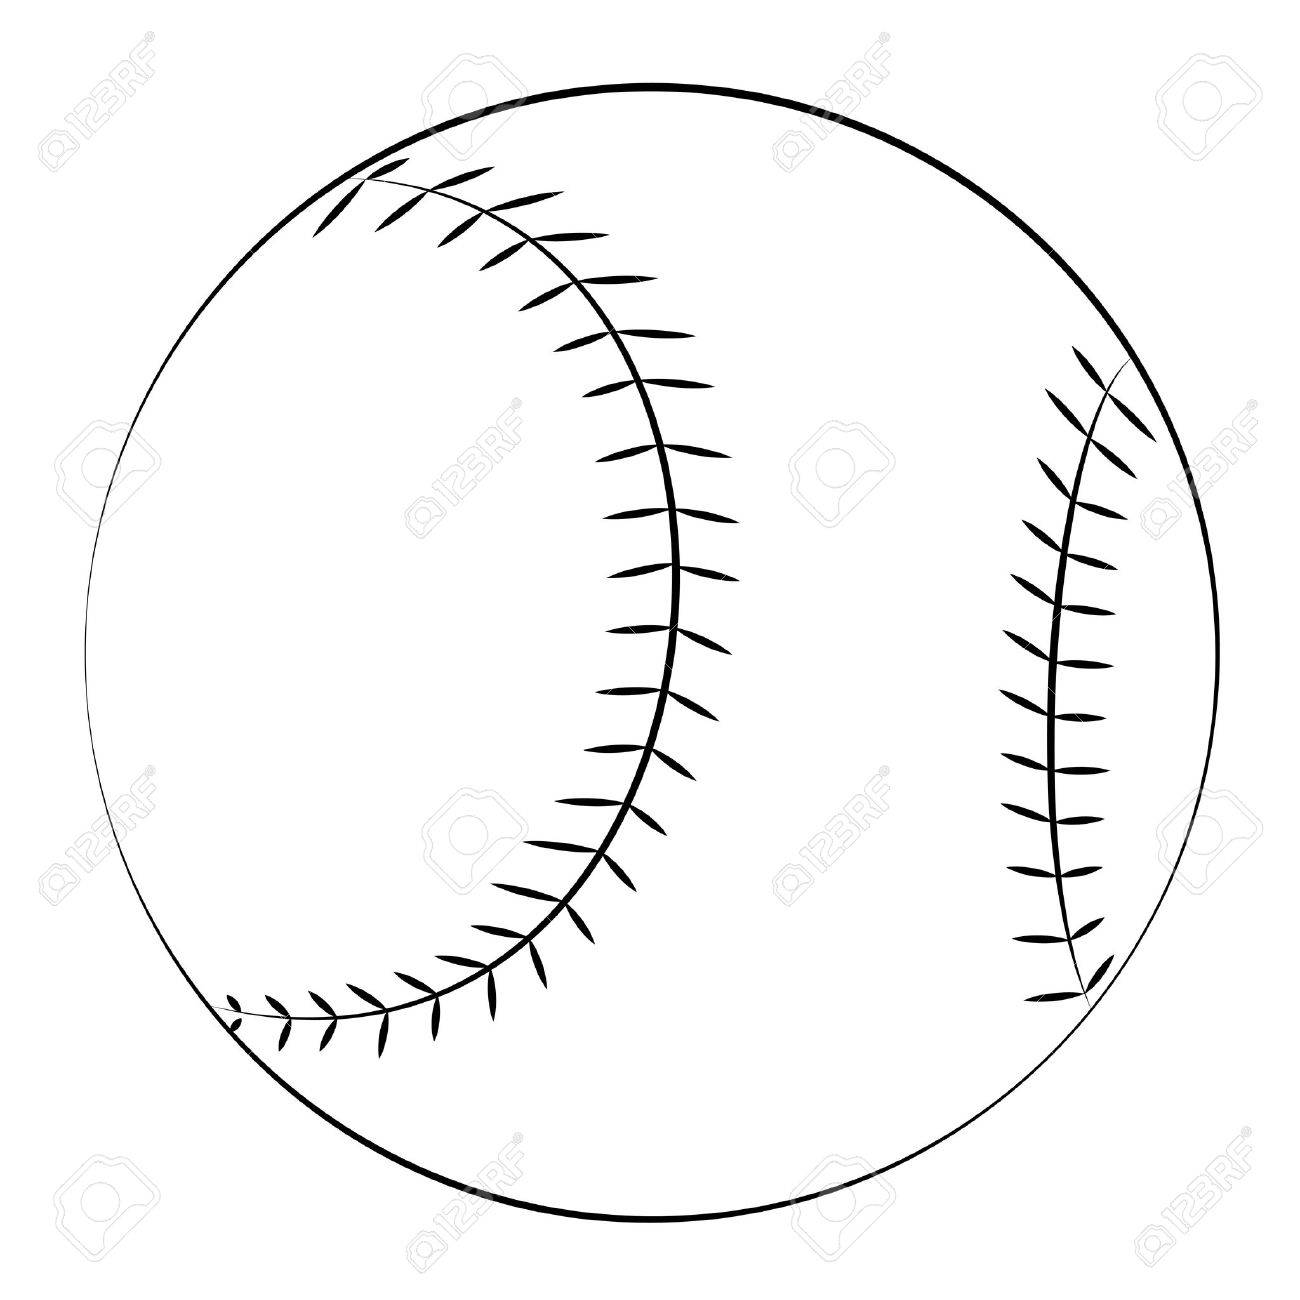 mike trout logo coloring pages   Baseball Outline   Free download best Baseball Outline on ...